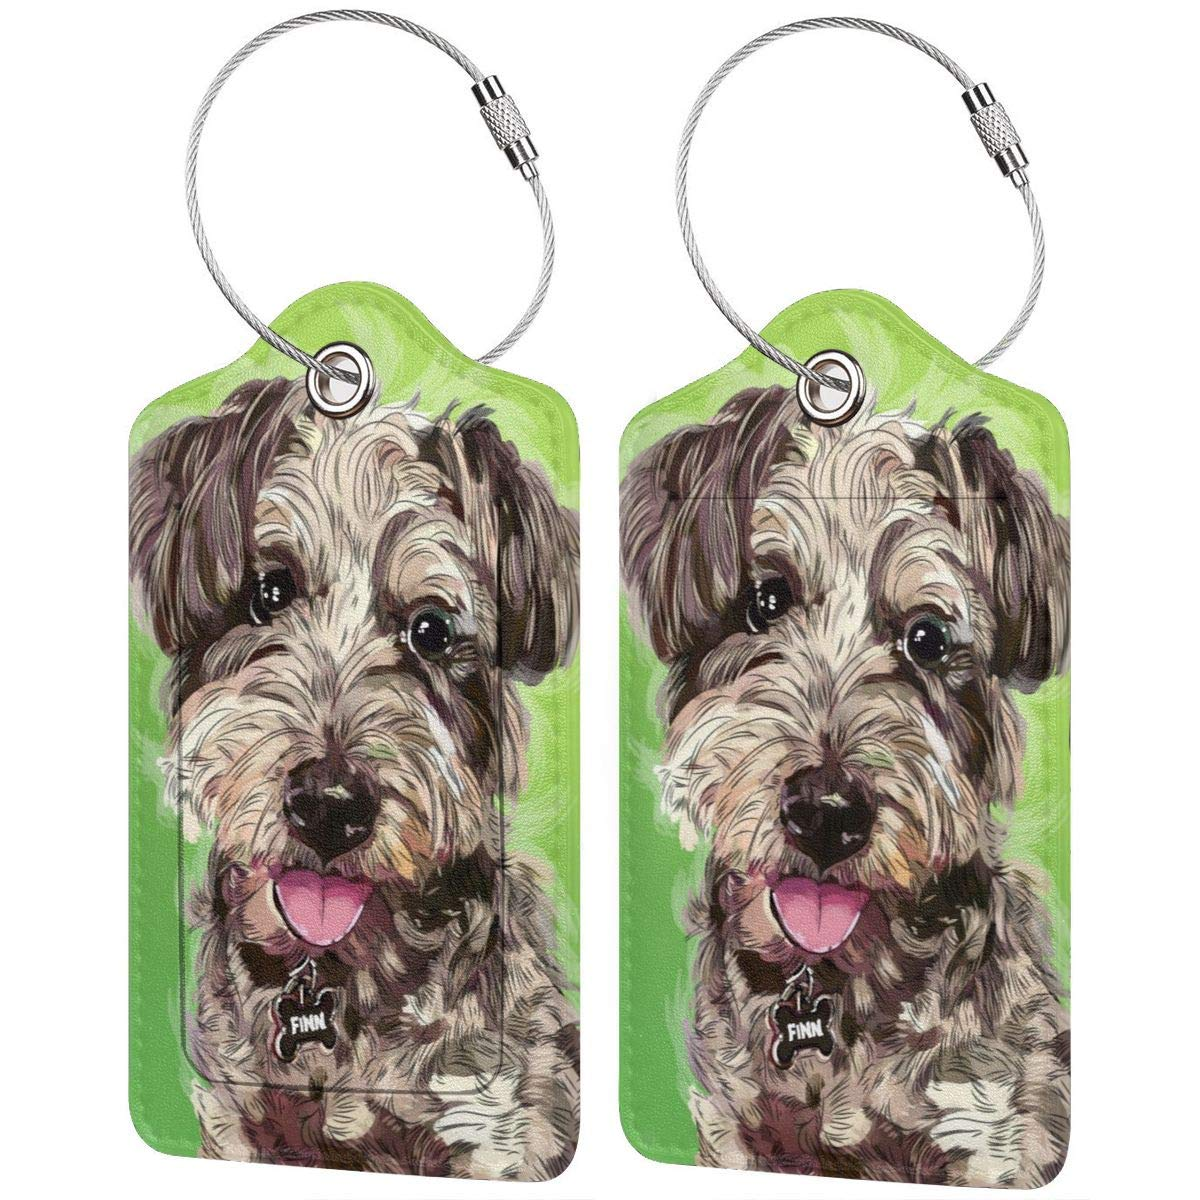 Luggage Tags PU Leather Suitcase Card Tag With Stainless Steel Loop Travel Baggage Handbag Tag Labels Travel Accessories Cute Funny Dog Pet Teddy set of 4